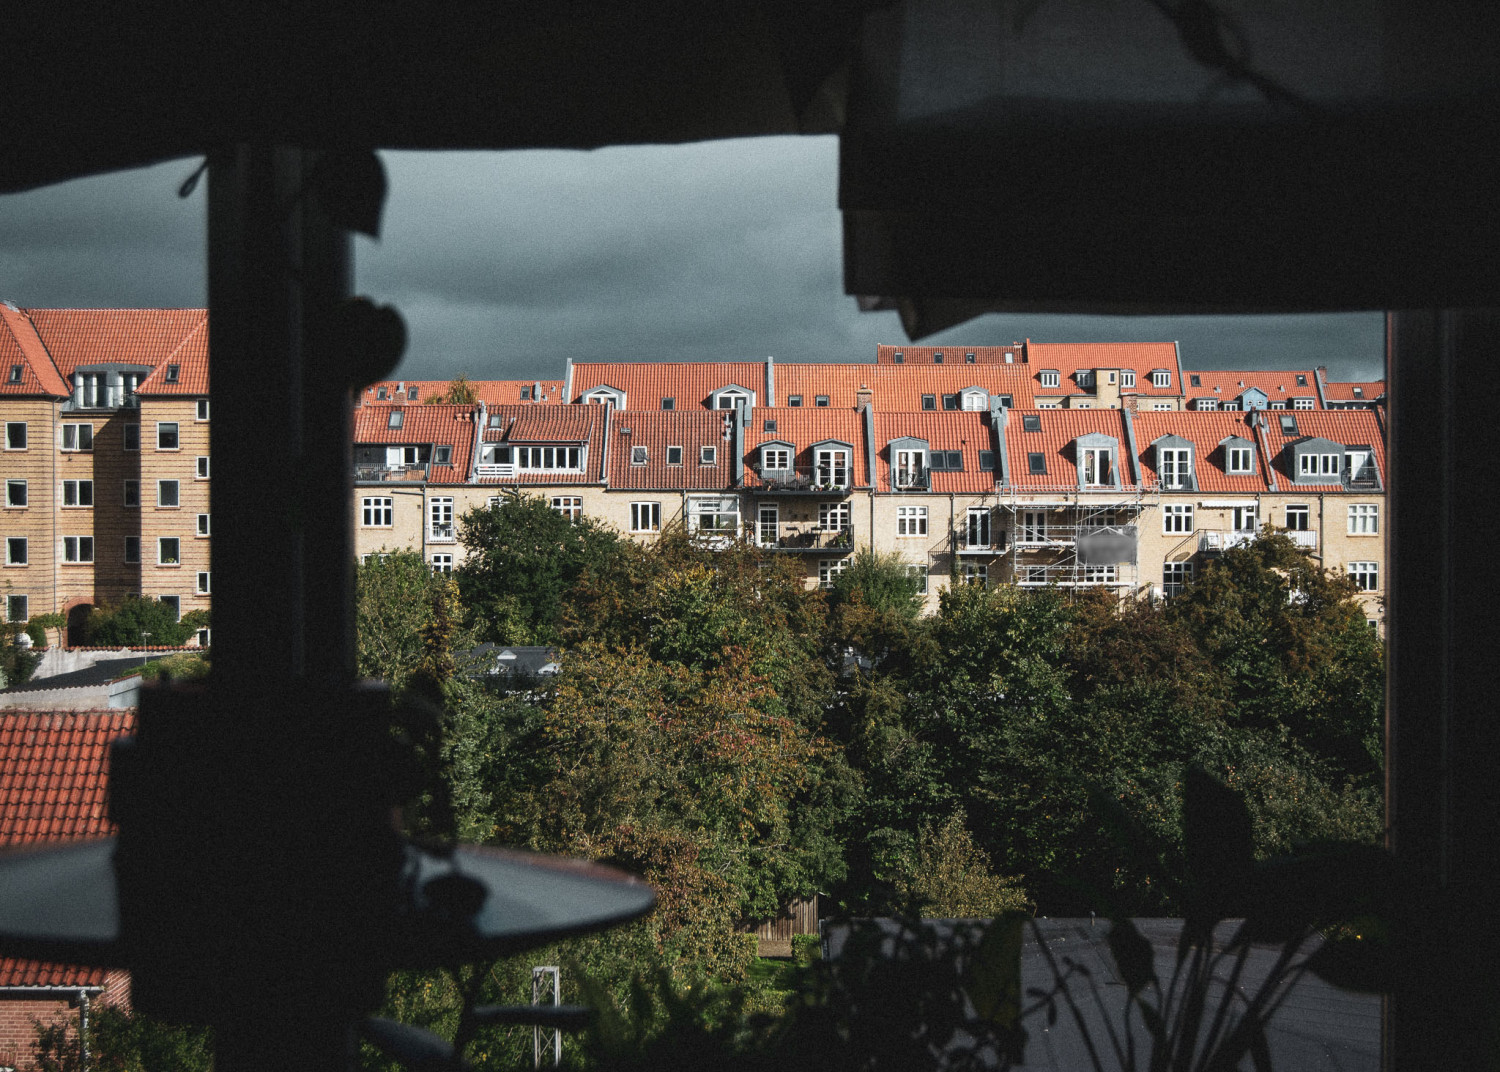 udsigt, by, huse, vindue, lejlighed, view, city, houses, window, apartment